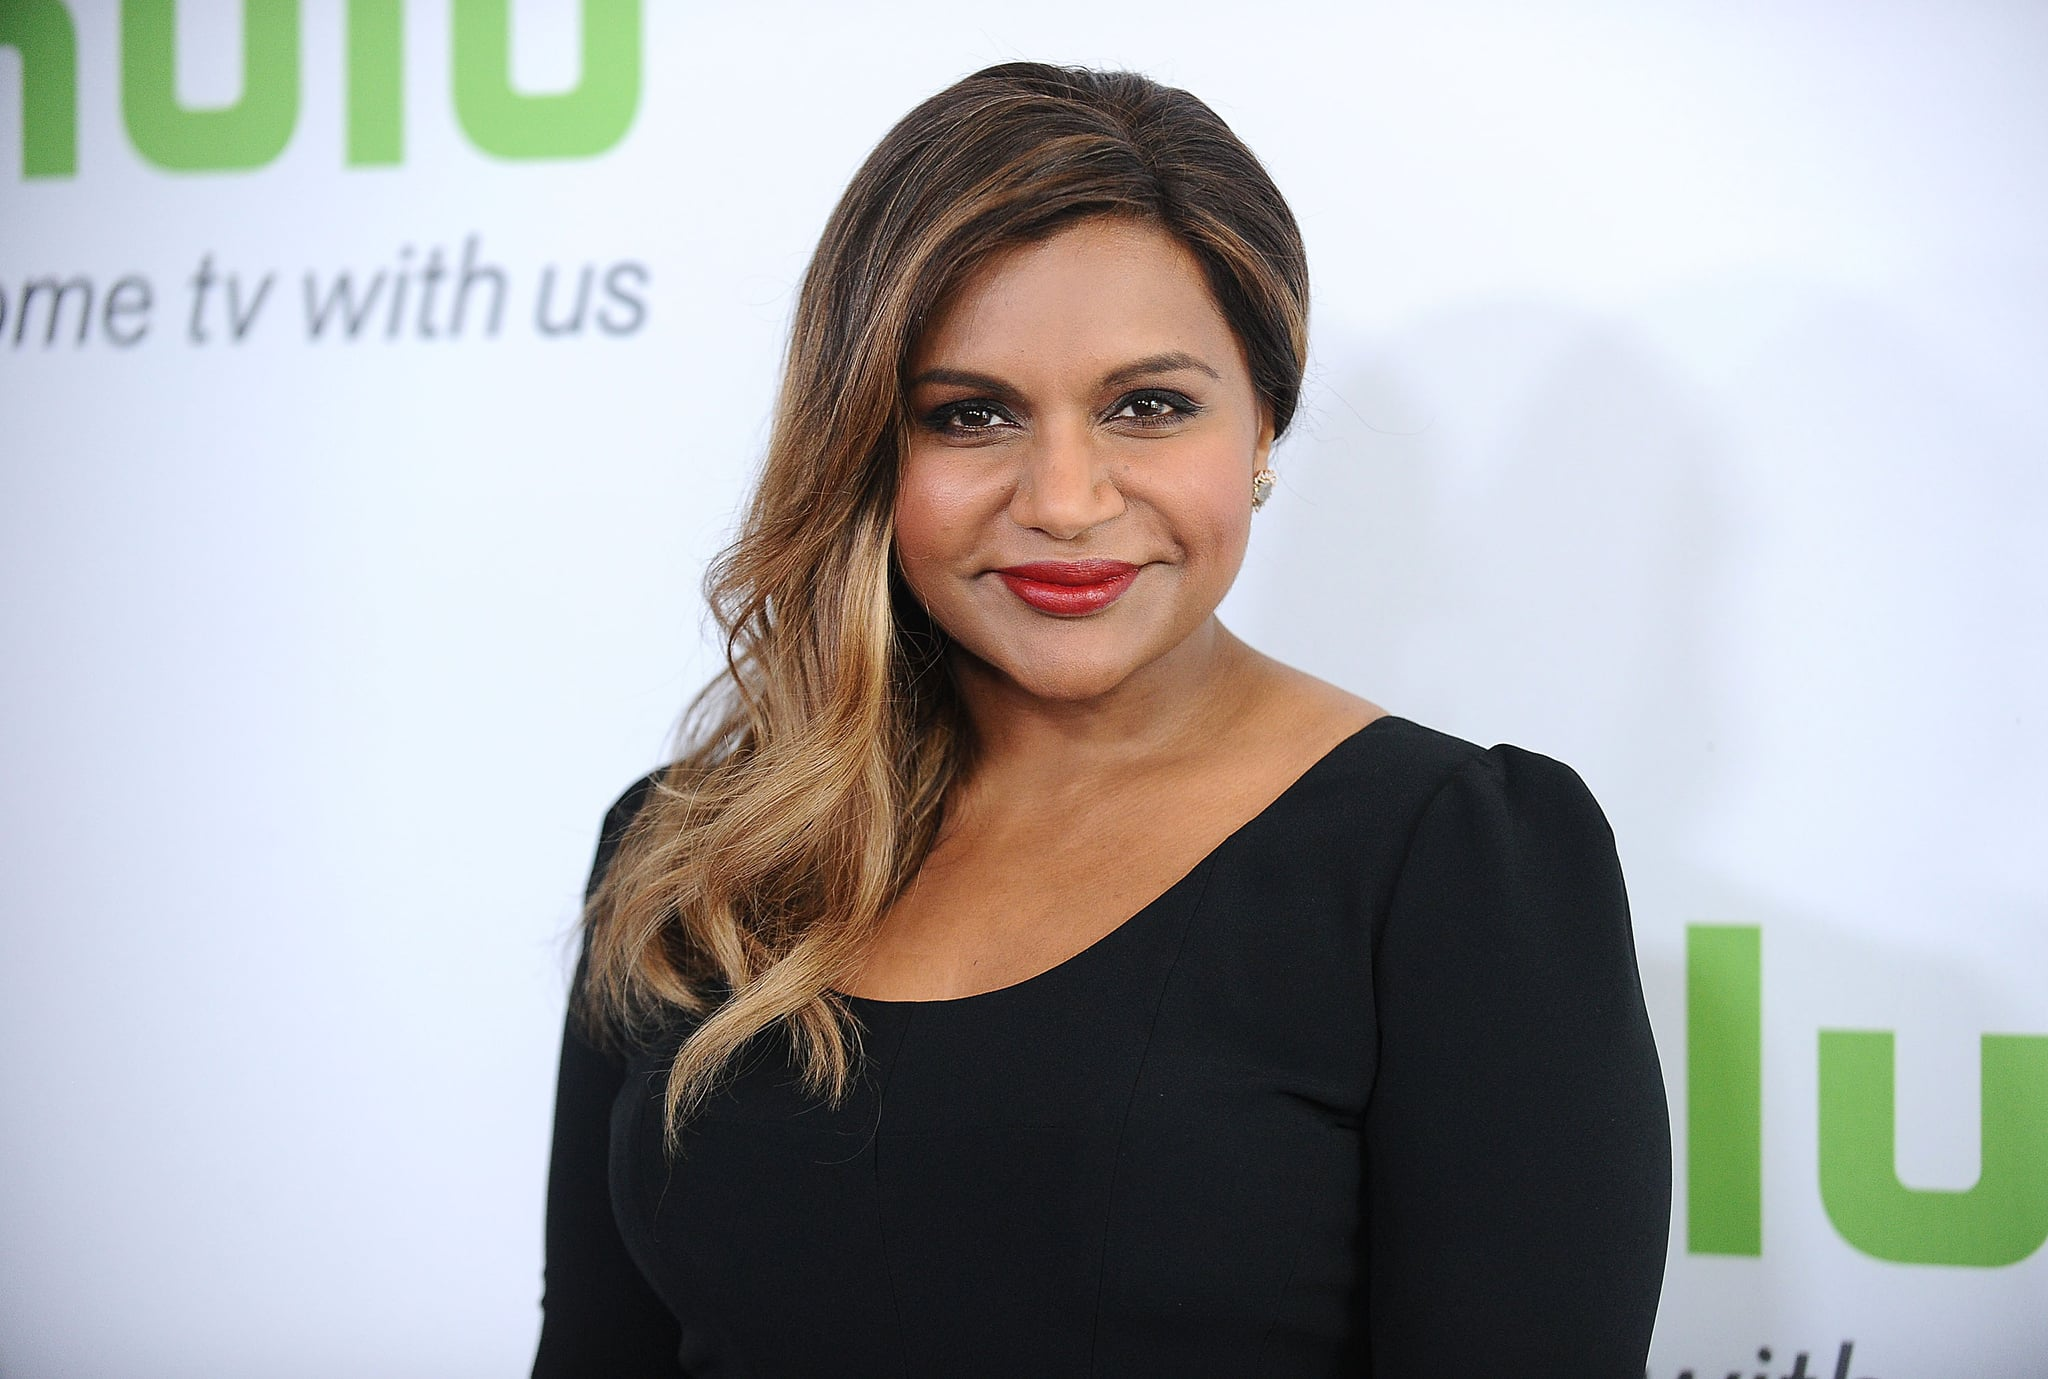 BEVERLY HILLS, CA - AUGUST 05:  Actress Mindy Kaling attends the Hulu TCA Summer 2016 at The Beverly Hilton Hotel on August 5, 2016 in Beverly Hills, California.  (Photo by Jason LaVeris/FilmMagic)